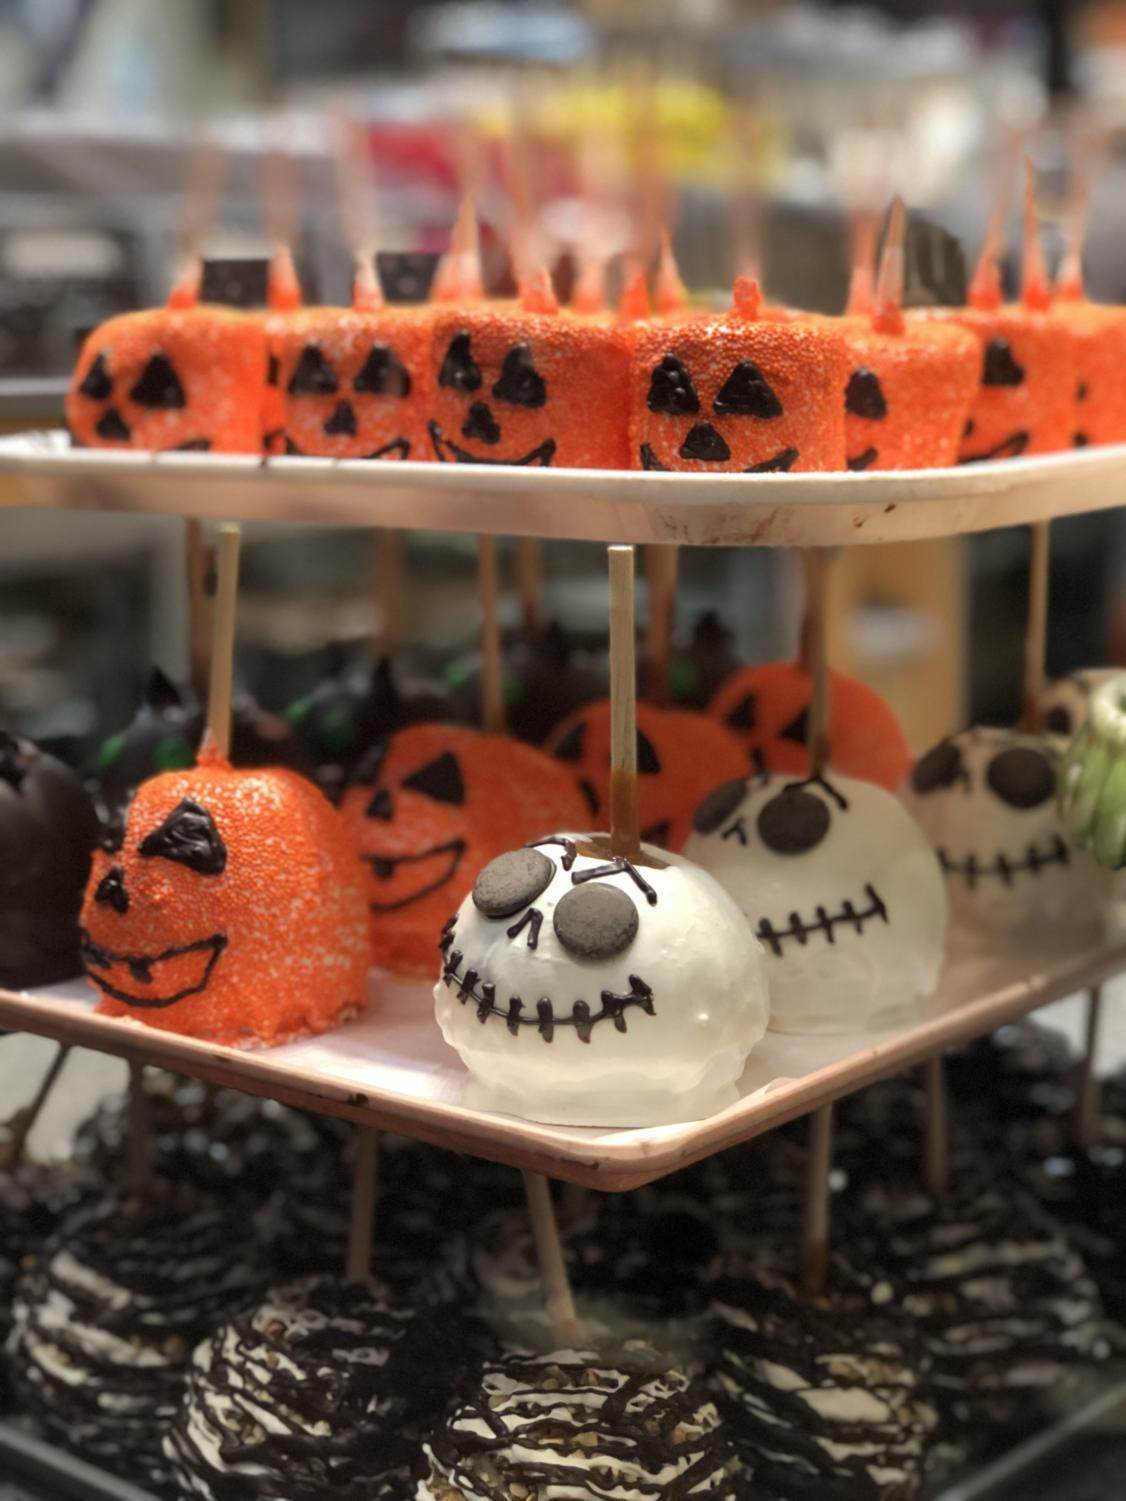 The Rocky Mountain Chocolate Factory at Irvine Spectrum boasts Halloween-themed candy apples and marshmallows dipped in chocolate.